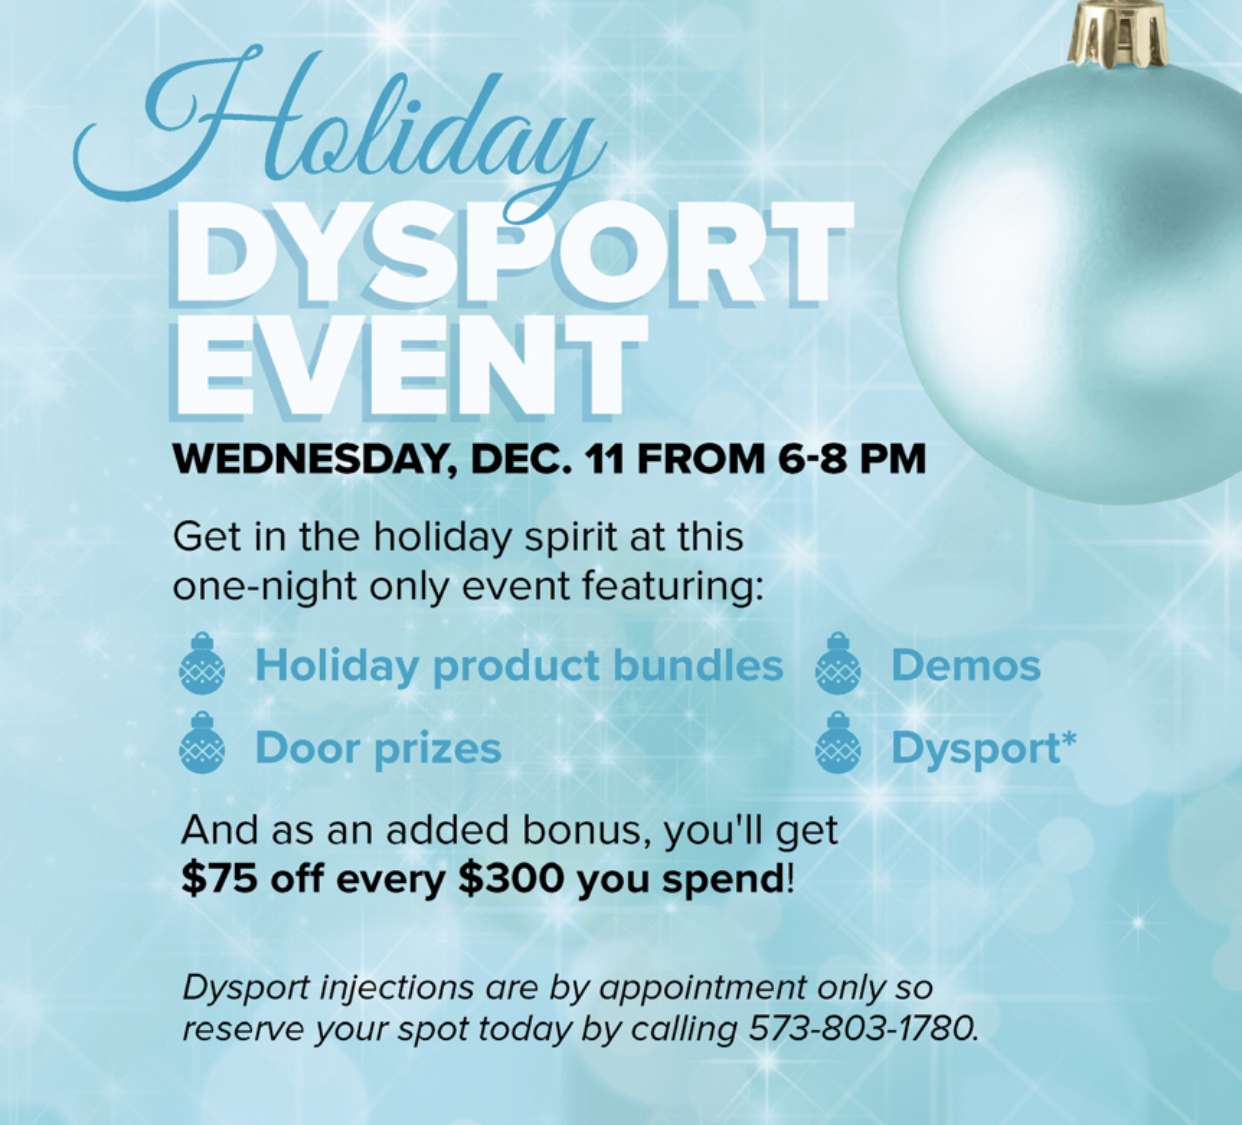 HOLIDAY DYSPORT EVENT